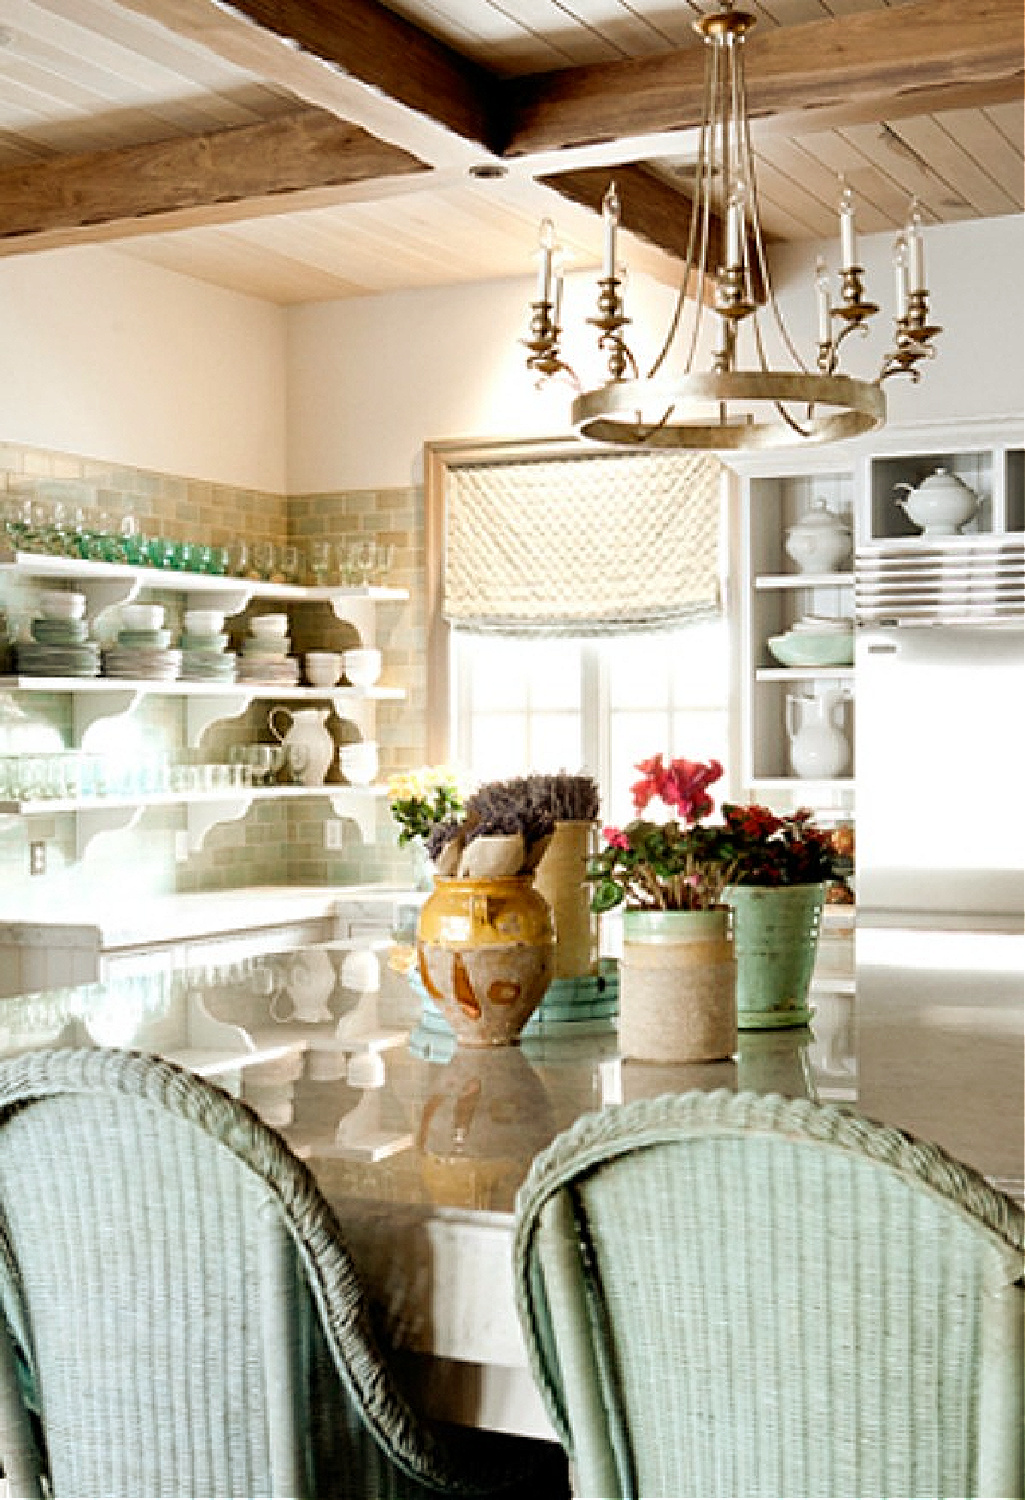 Aqua and pastel greens in a French country kitchen by Desiree Ashworth of Decor de Provence.